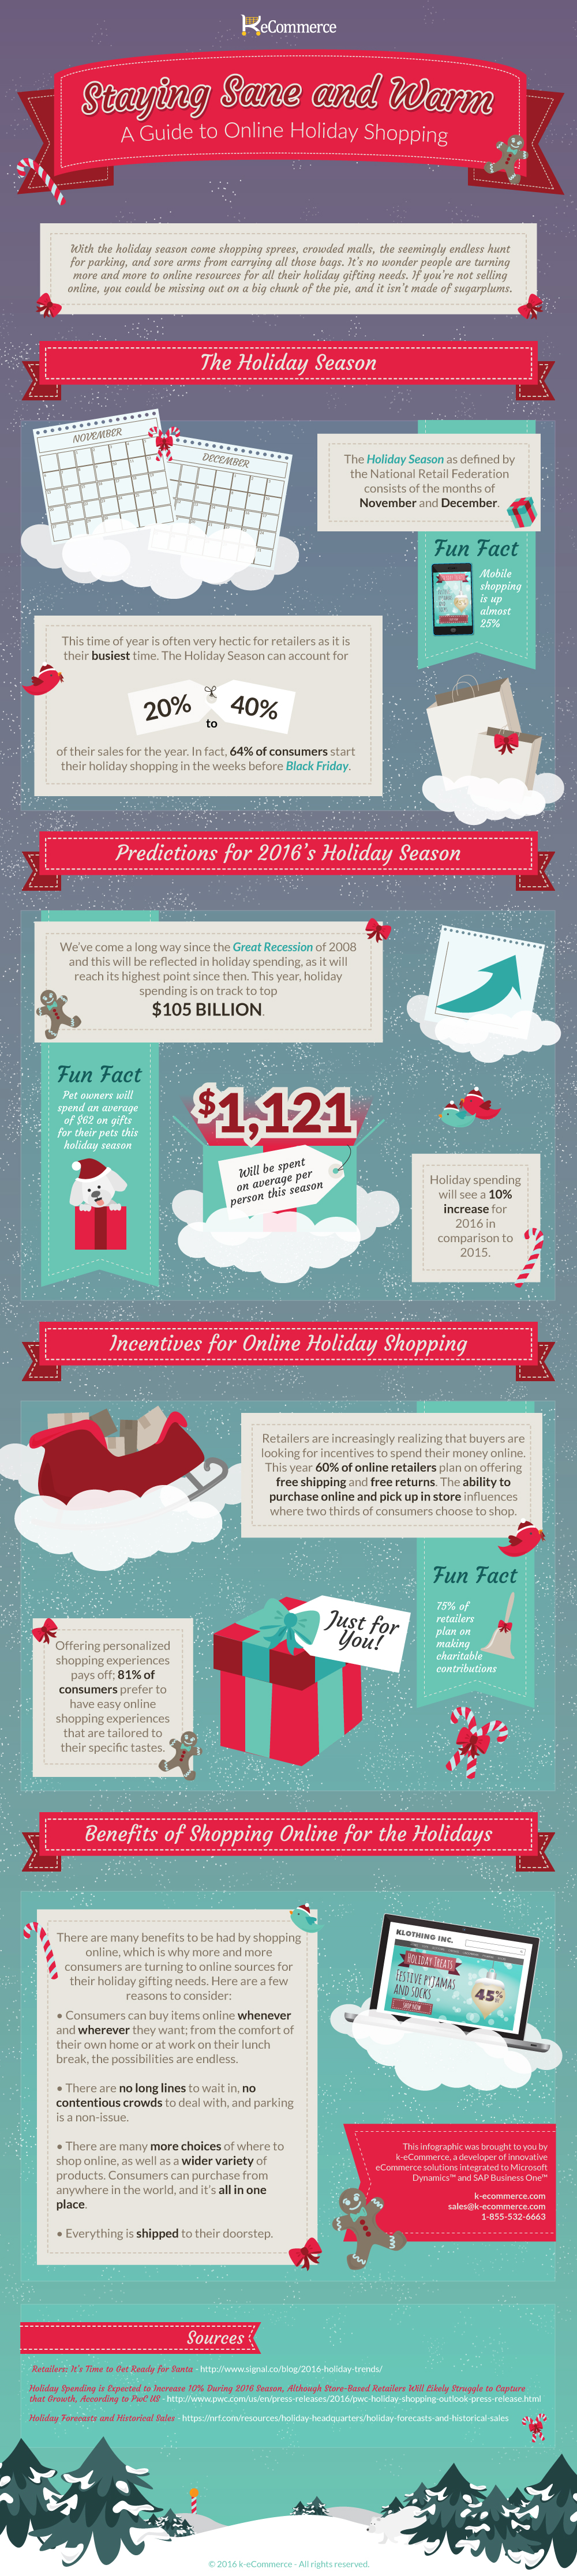 Staying Sane and Warm: A guide to online holiday shopping